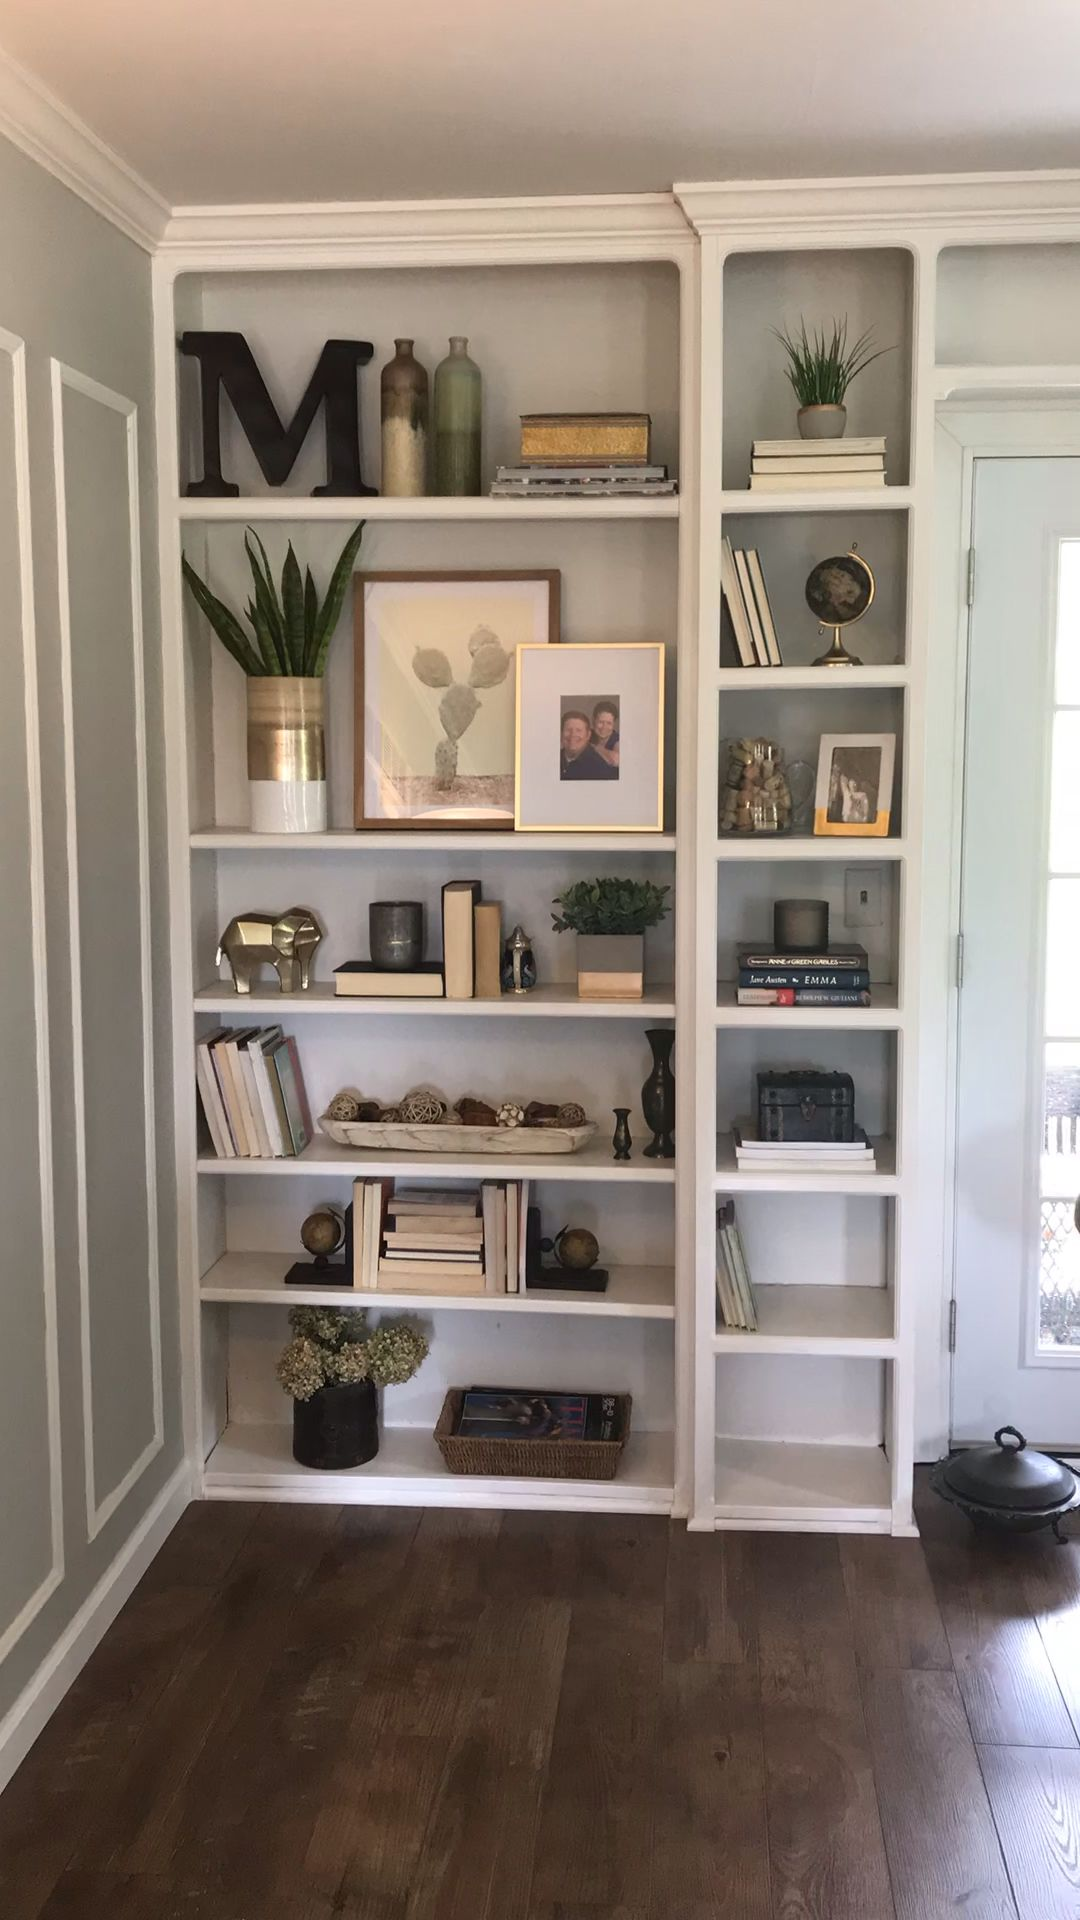 Bookshelf Styling by The Chic(ish) Chick